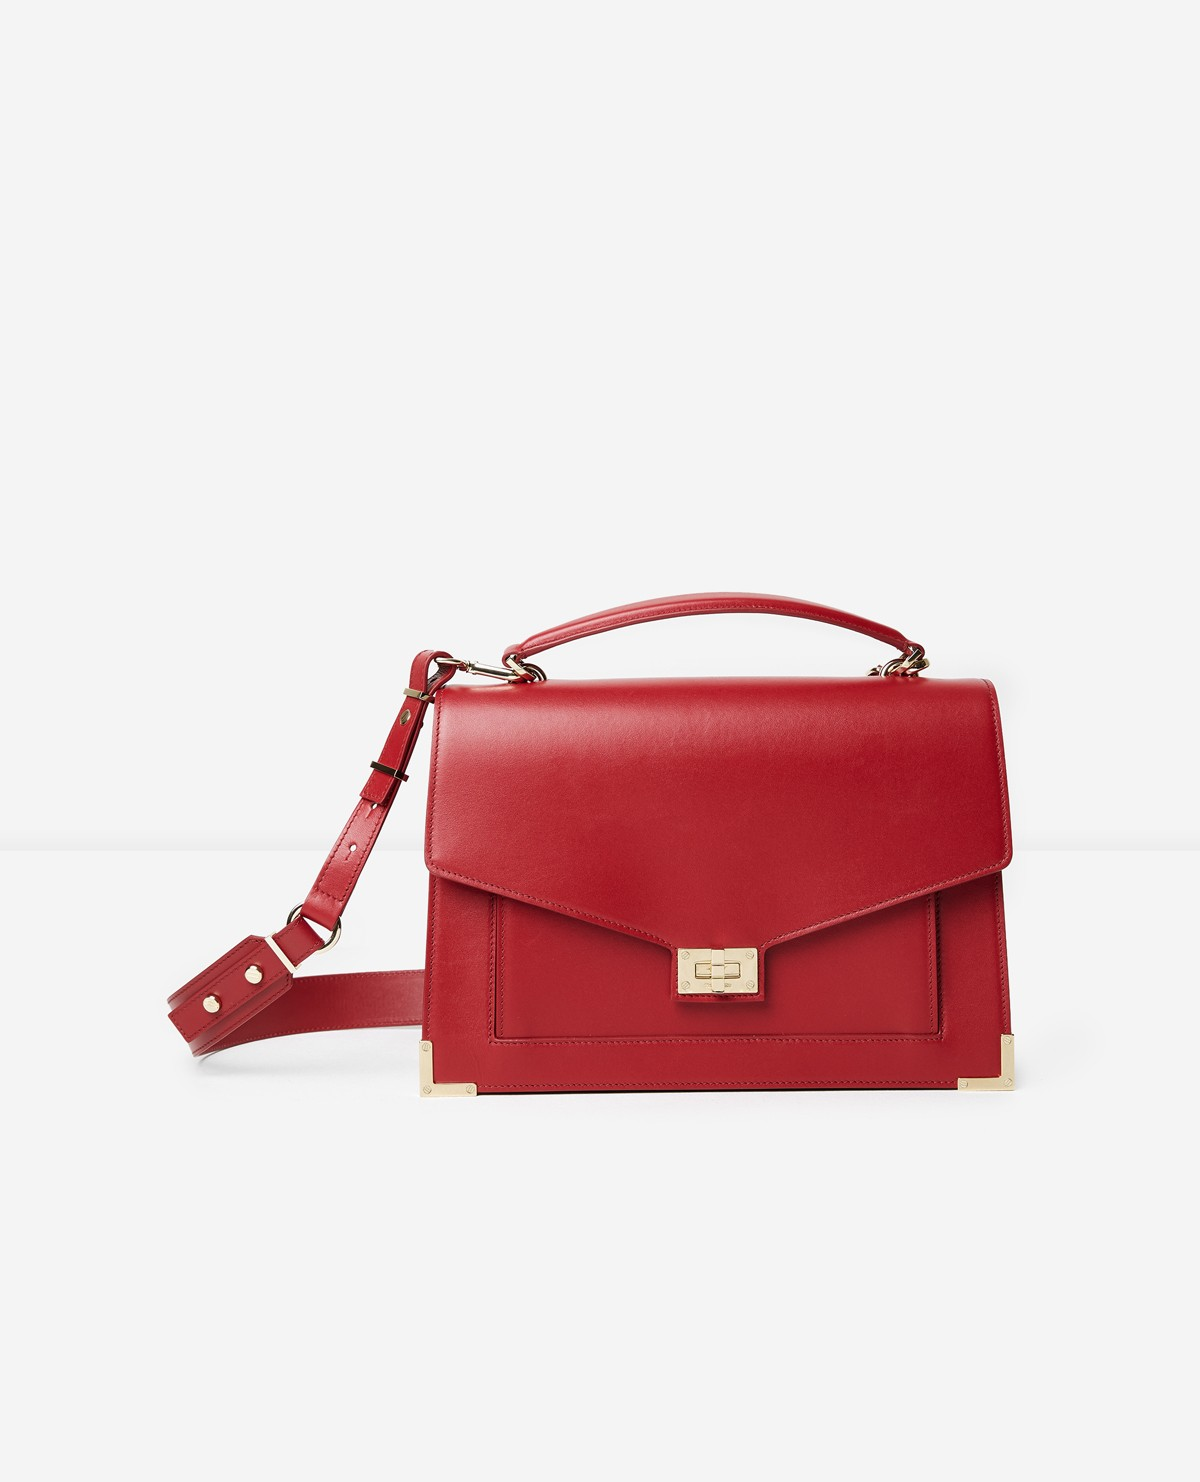 Sac The kooples Emily Iconic 388€